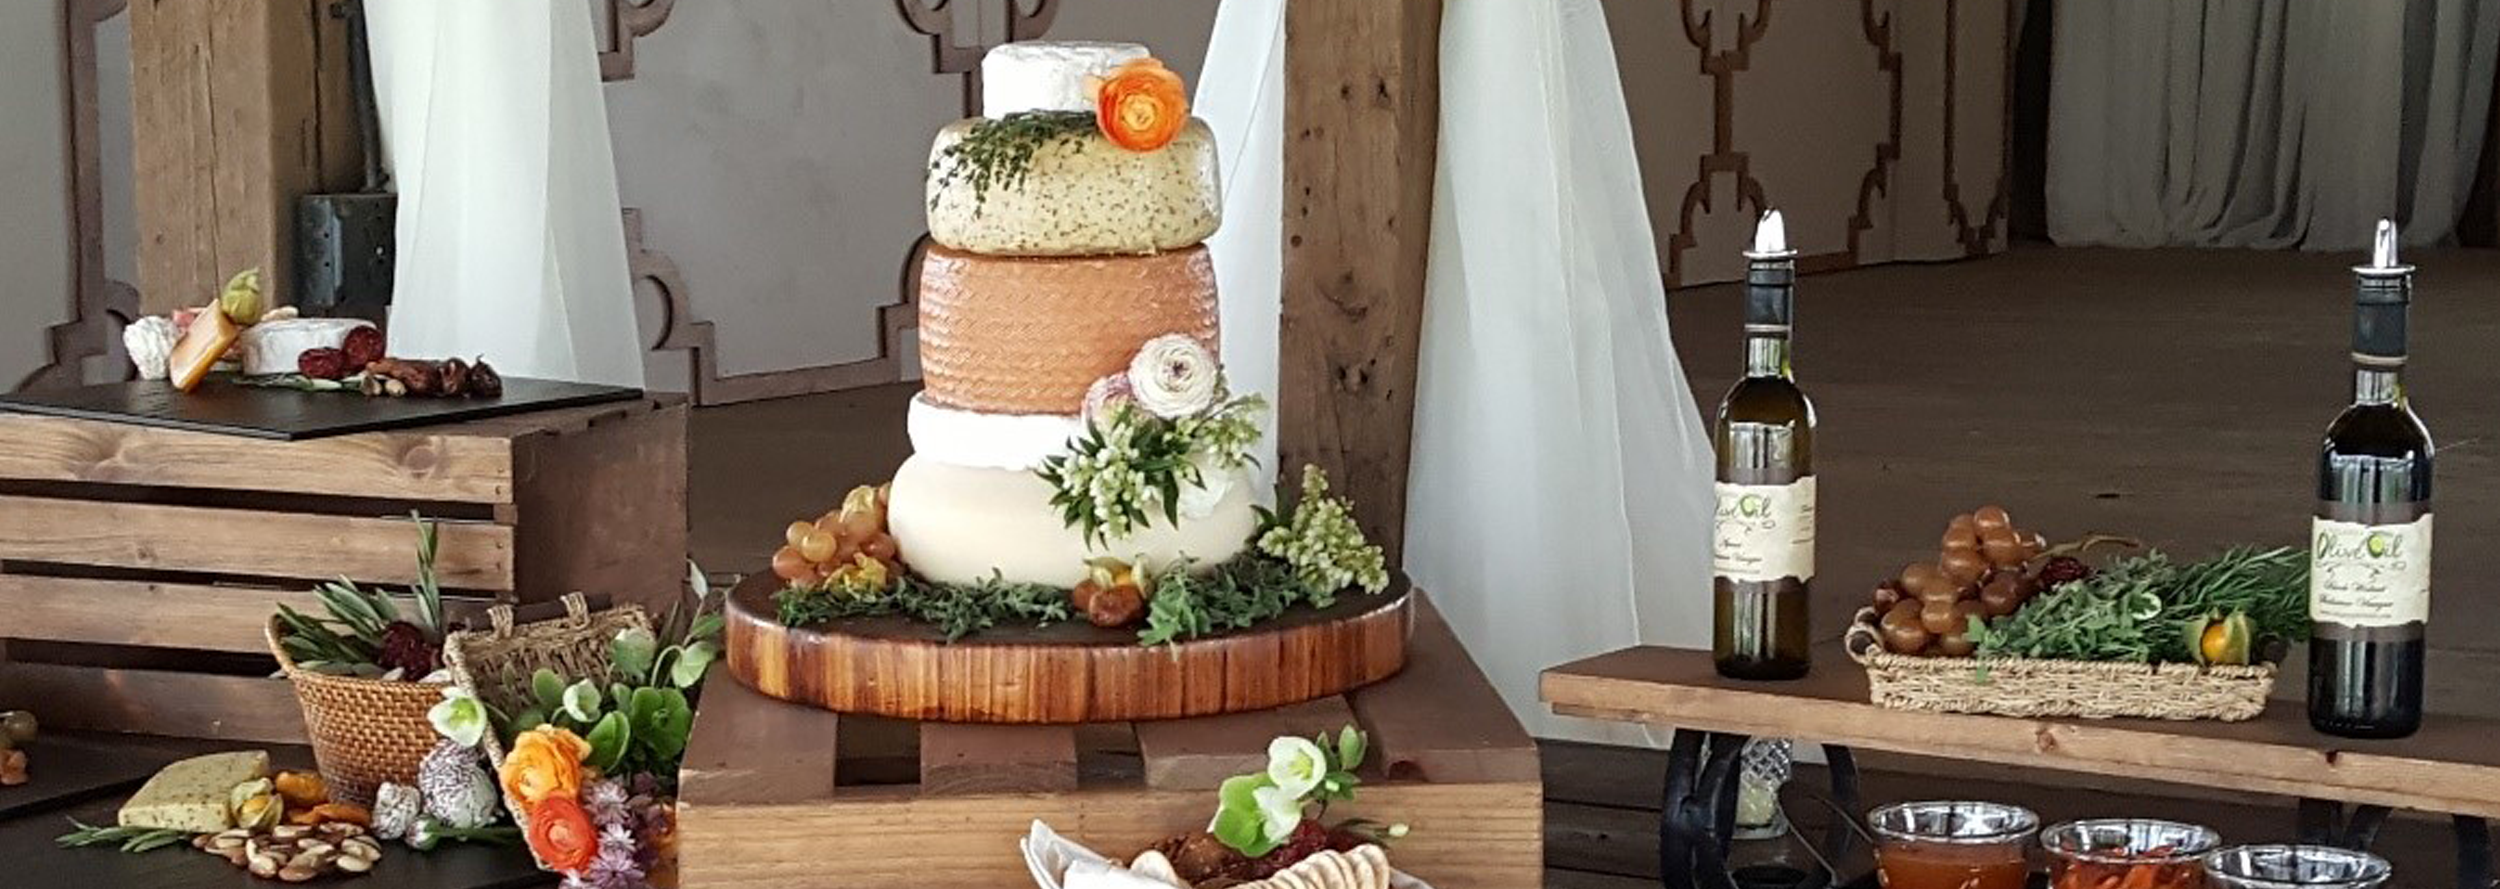 cheese cake table.png